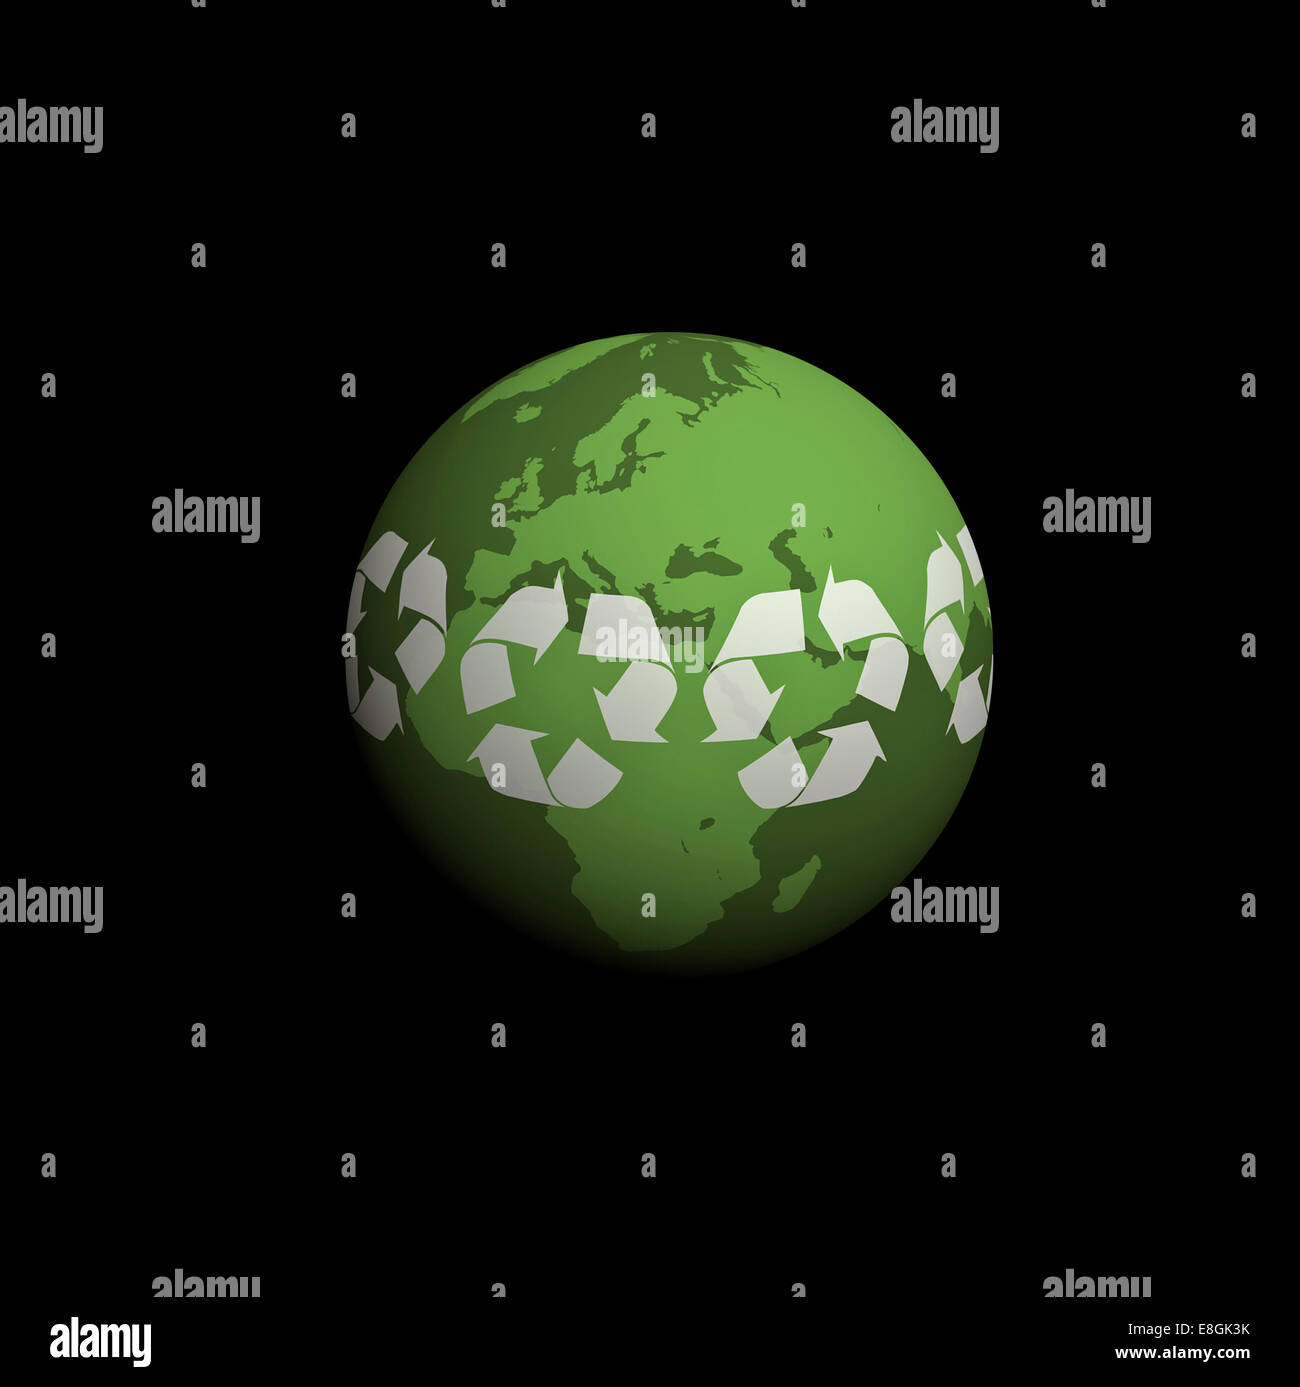 Digitally generated image of planet earth, Green planet - Stock Image